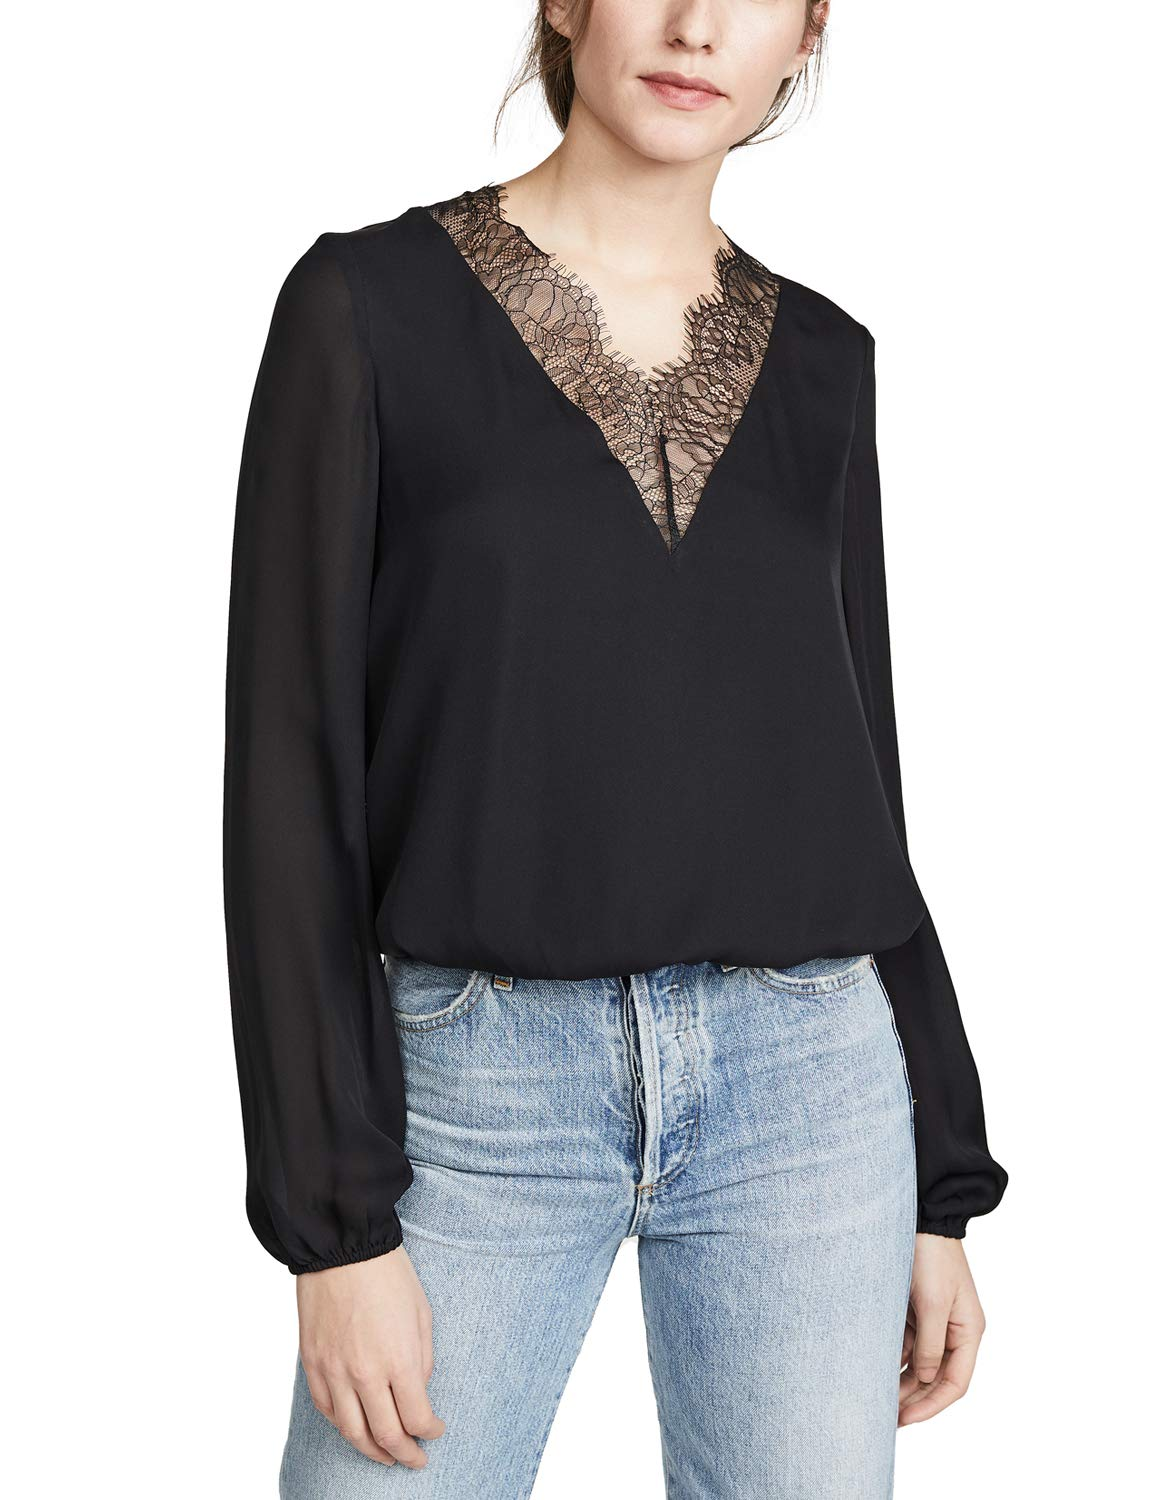 Blooming Jelly Womens Long Sleeve V Neck Lace Chiffon Blouse Top Shirt Black